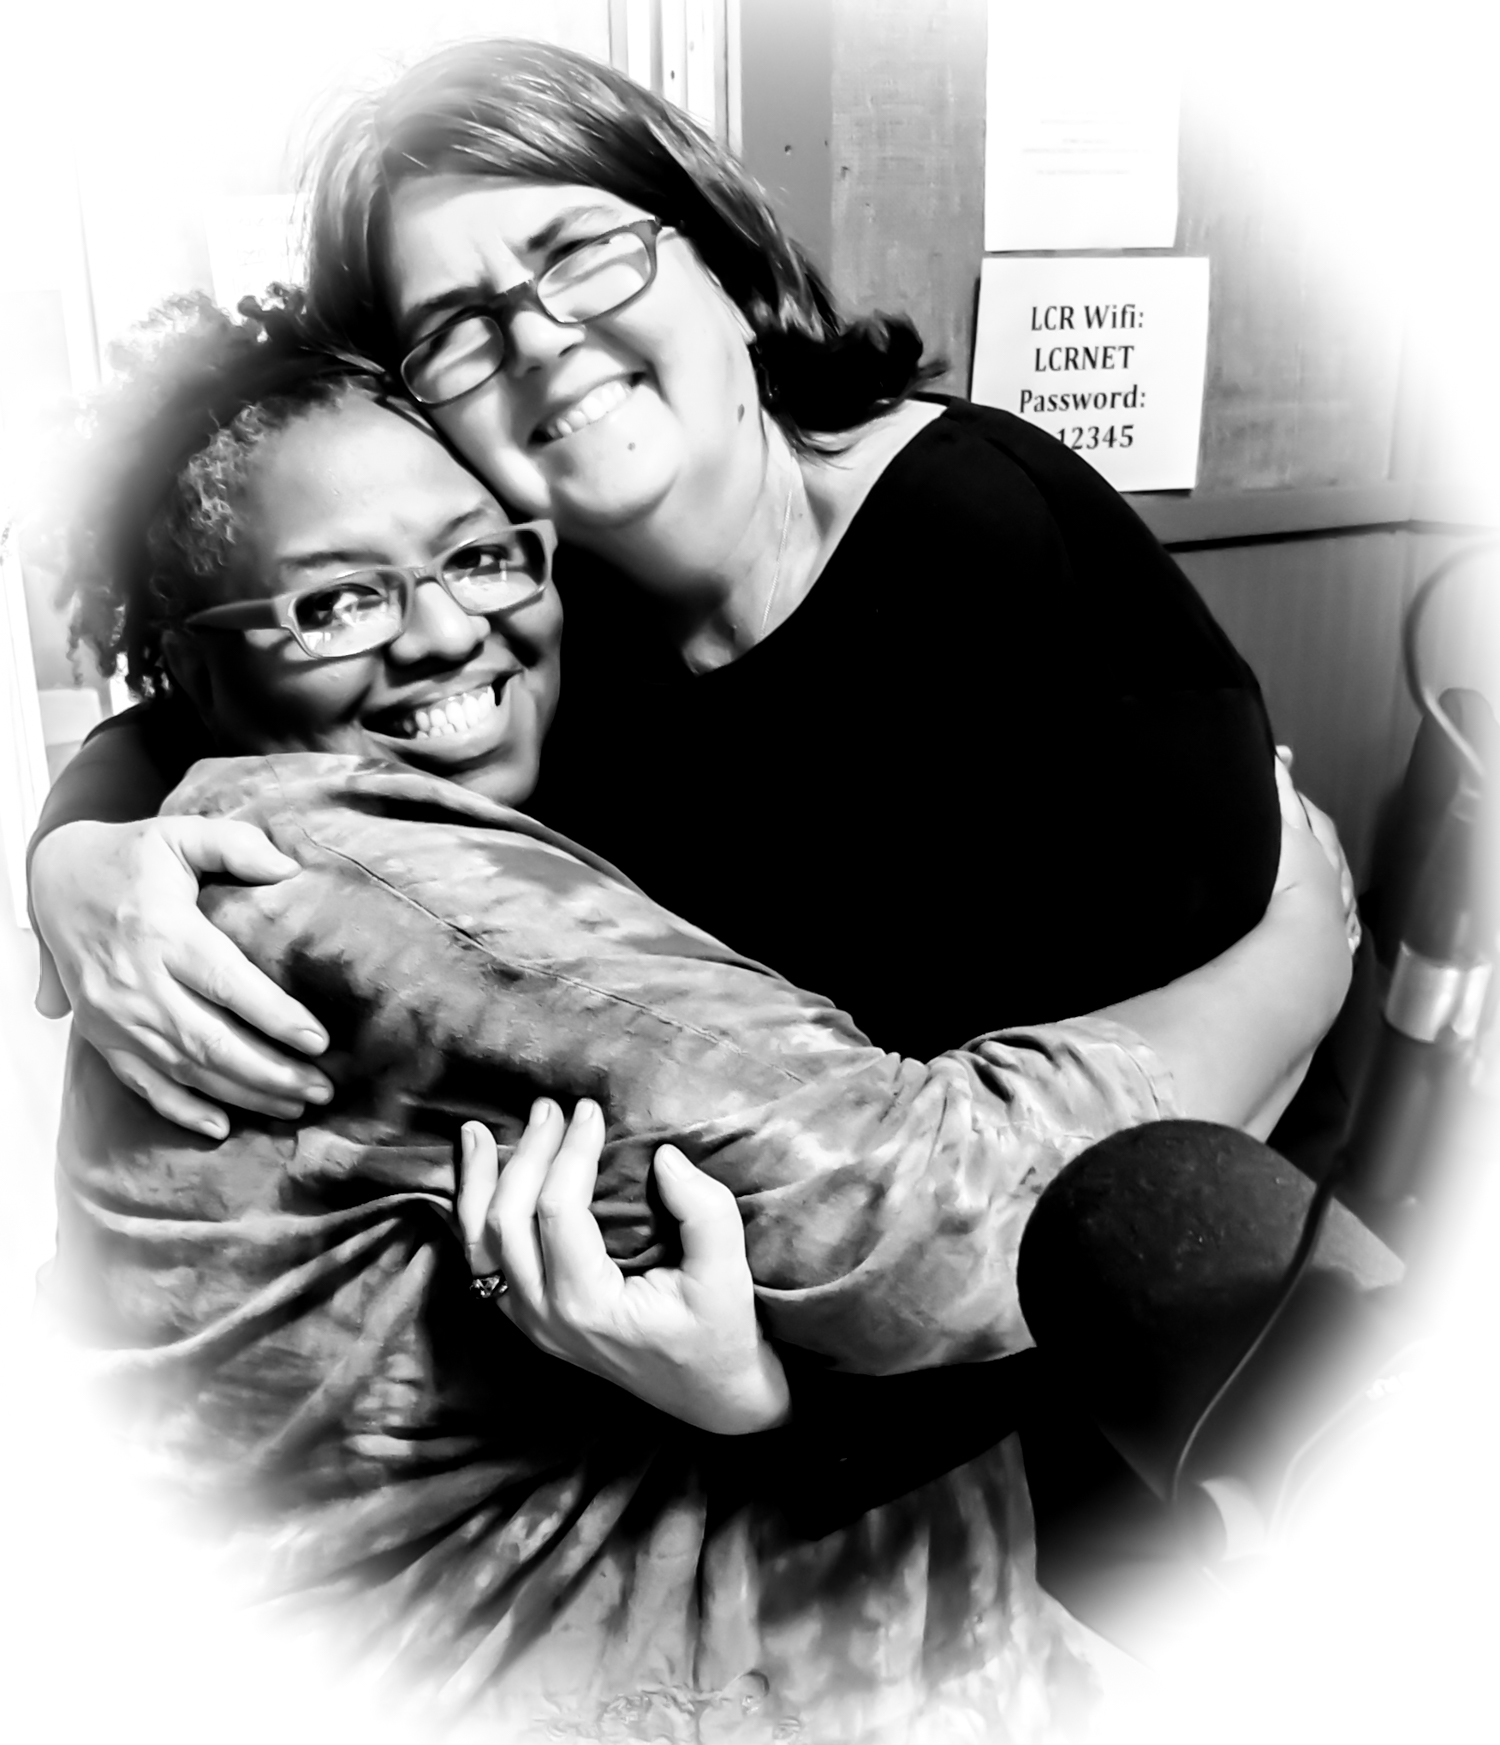 From left, Crystal Wilkinson, Ouita Michel.